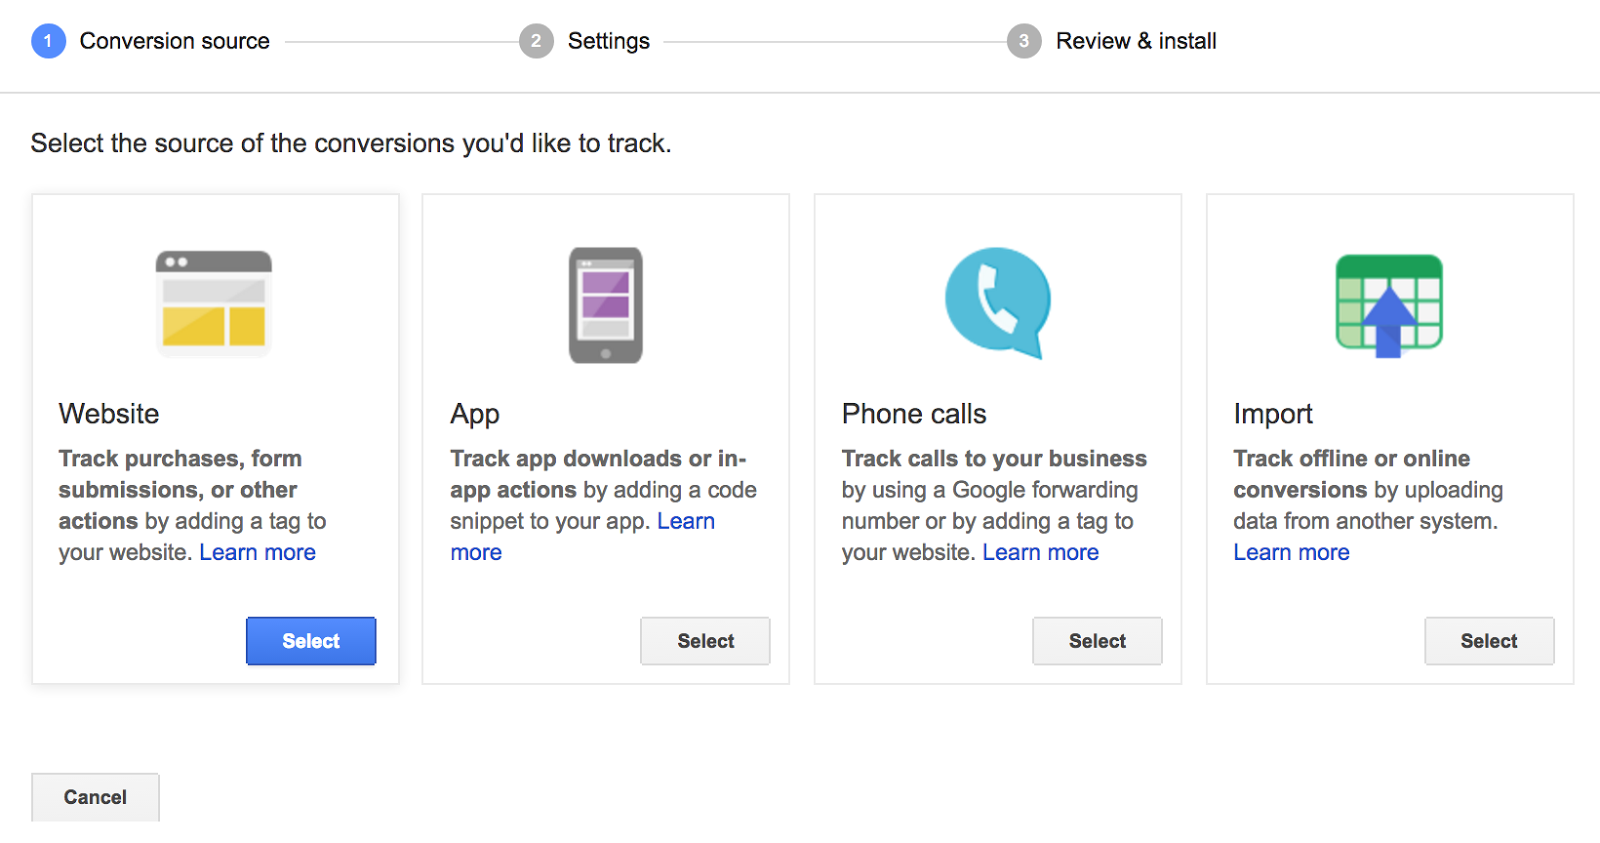 If you want to track app actions or phone calls, you can select the other options.